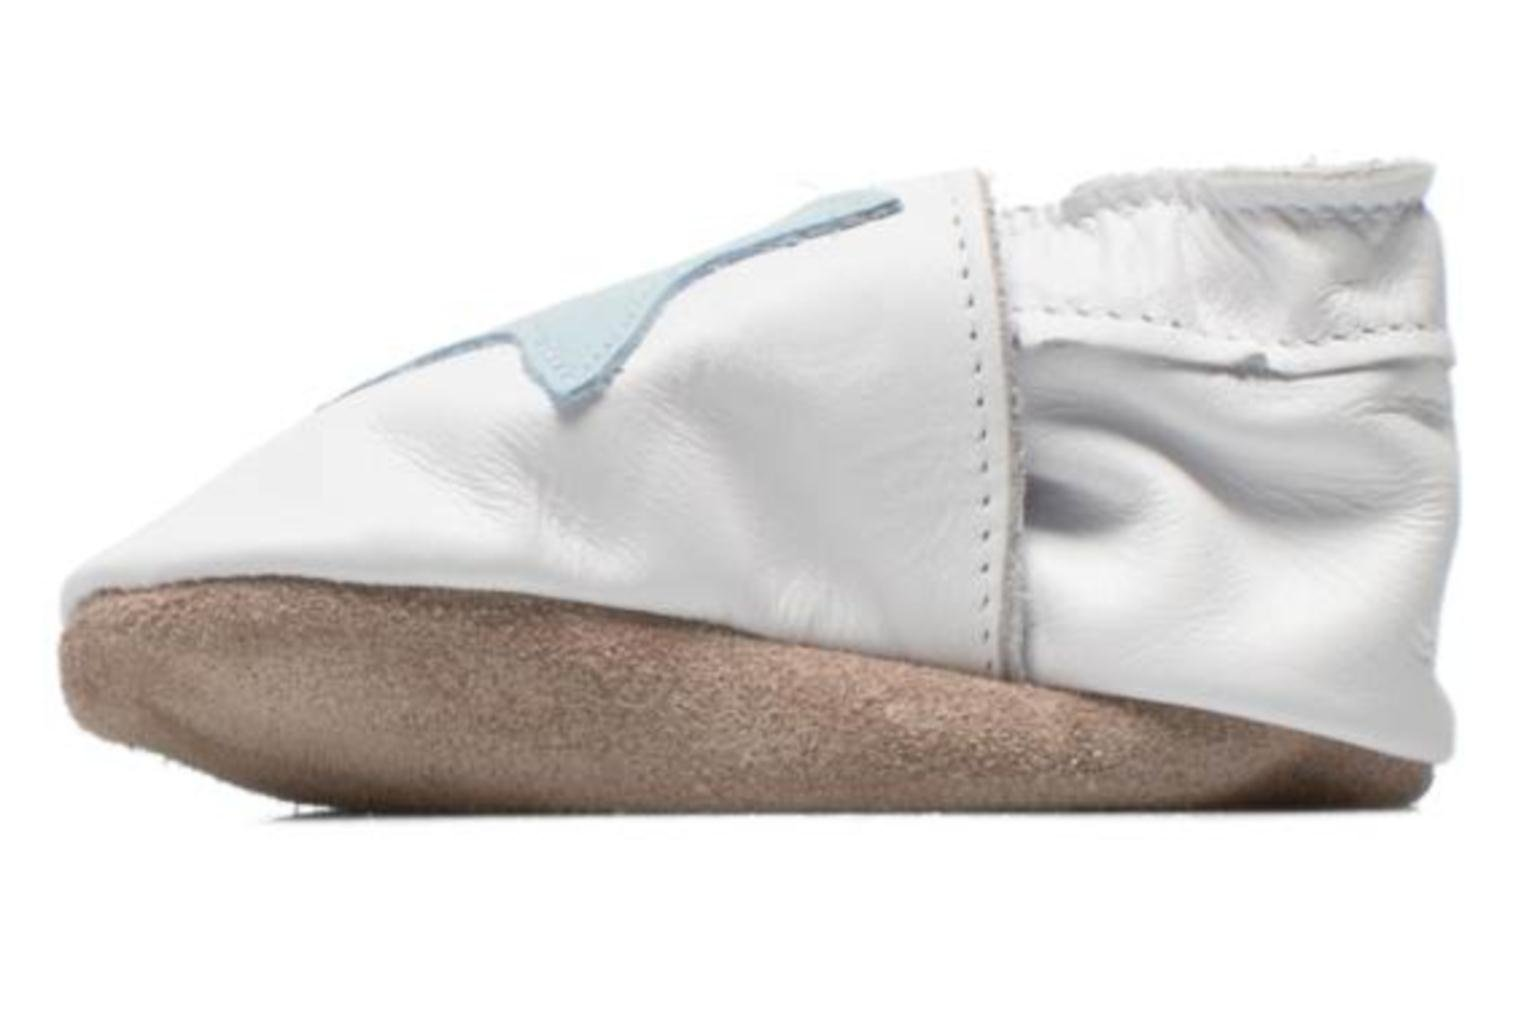 Chaussons Inch Blue Star Blanc vue face